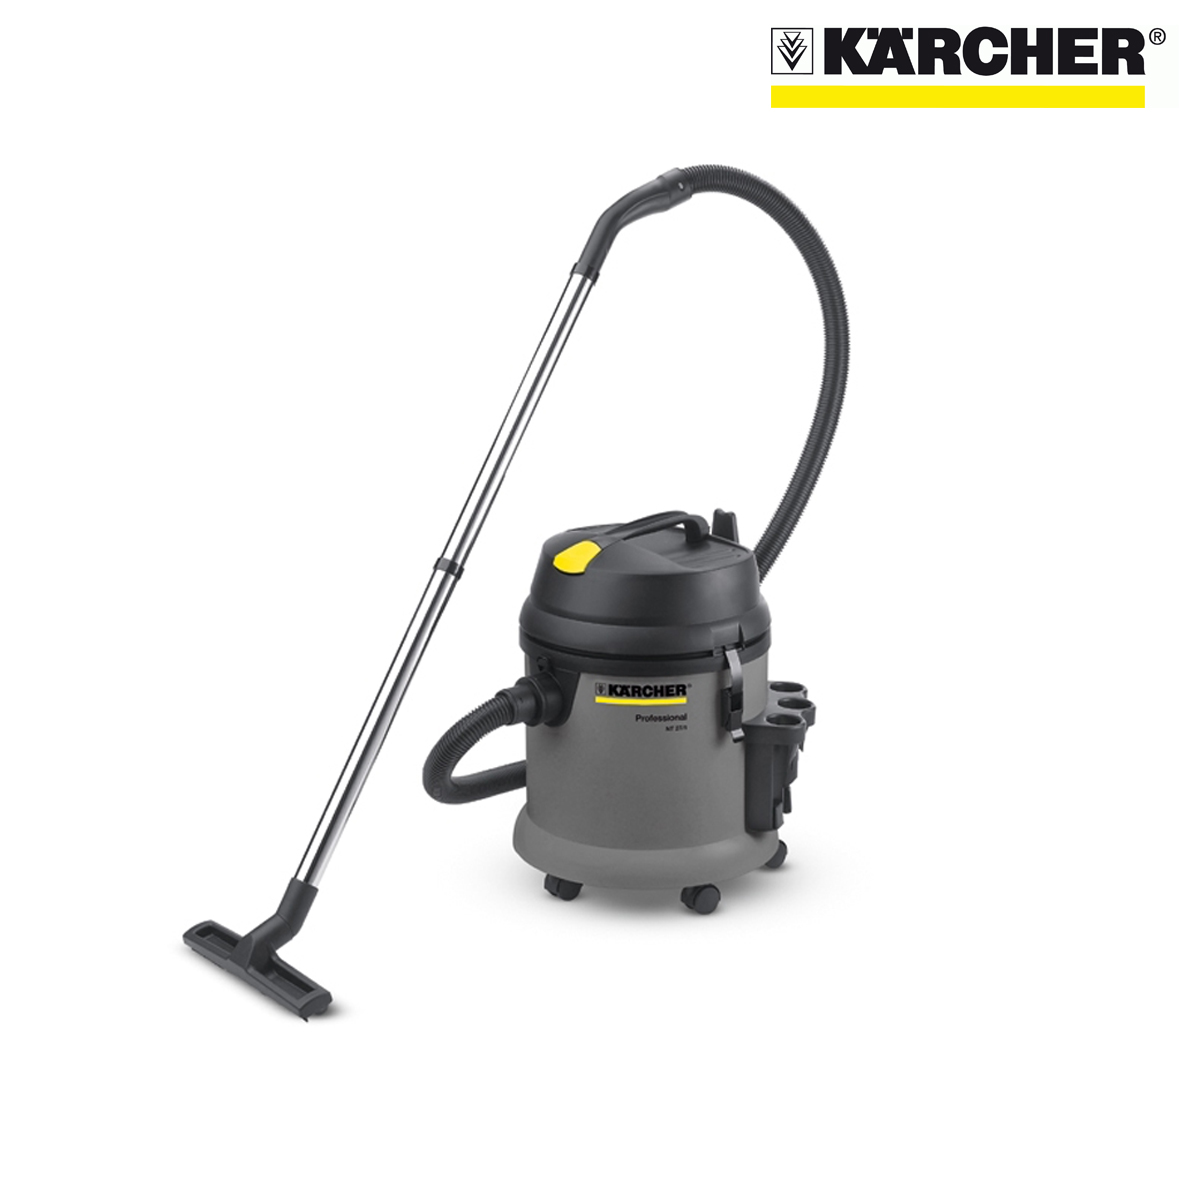 k rcher aspirateur eau et poussi res karcher nt 27 1 distriartisan. Black Bedroom Furniture Sets. Home Design Ideas